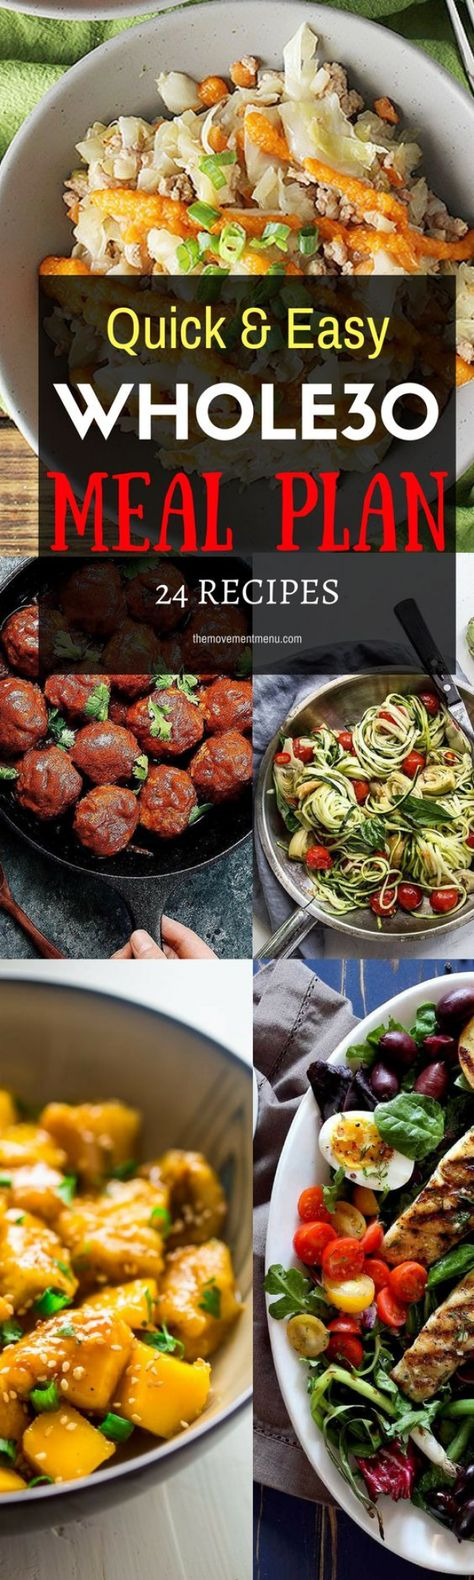 A Whole30 meal plan that's quick and healthy! Whole30 recipes just for you. Best Trader Joes shopping list. Whole30 meal planning. Whole30 meal prep. Healthy paleo meals. Healthy Whole30 recipes. Easy Whole30 recipes. #paleodiet